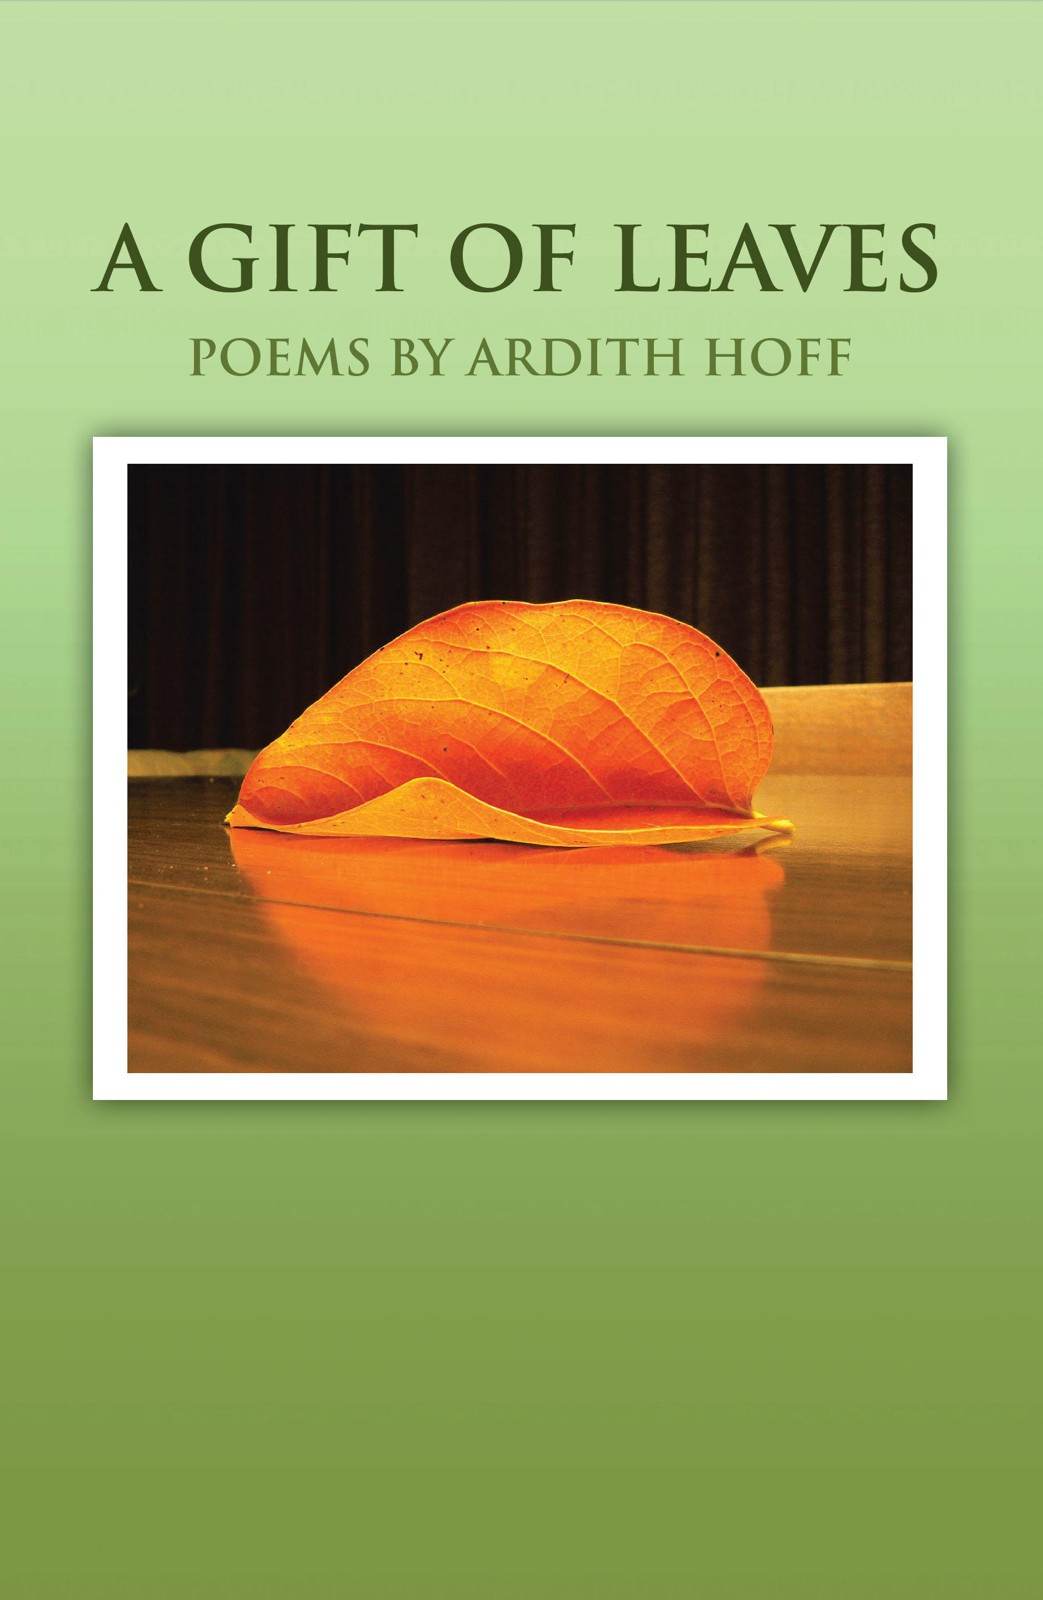 A GIFT OF LEAVES By: Ardith J. Hoff